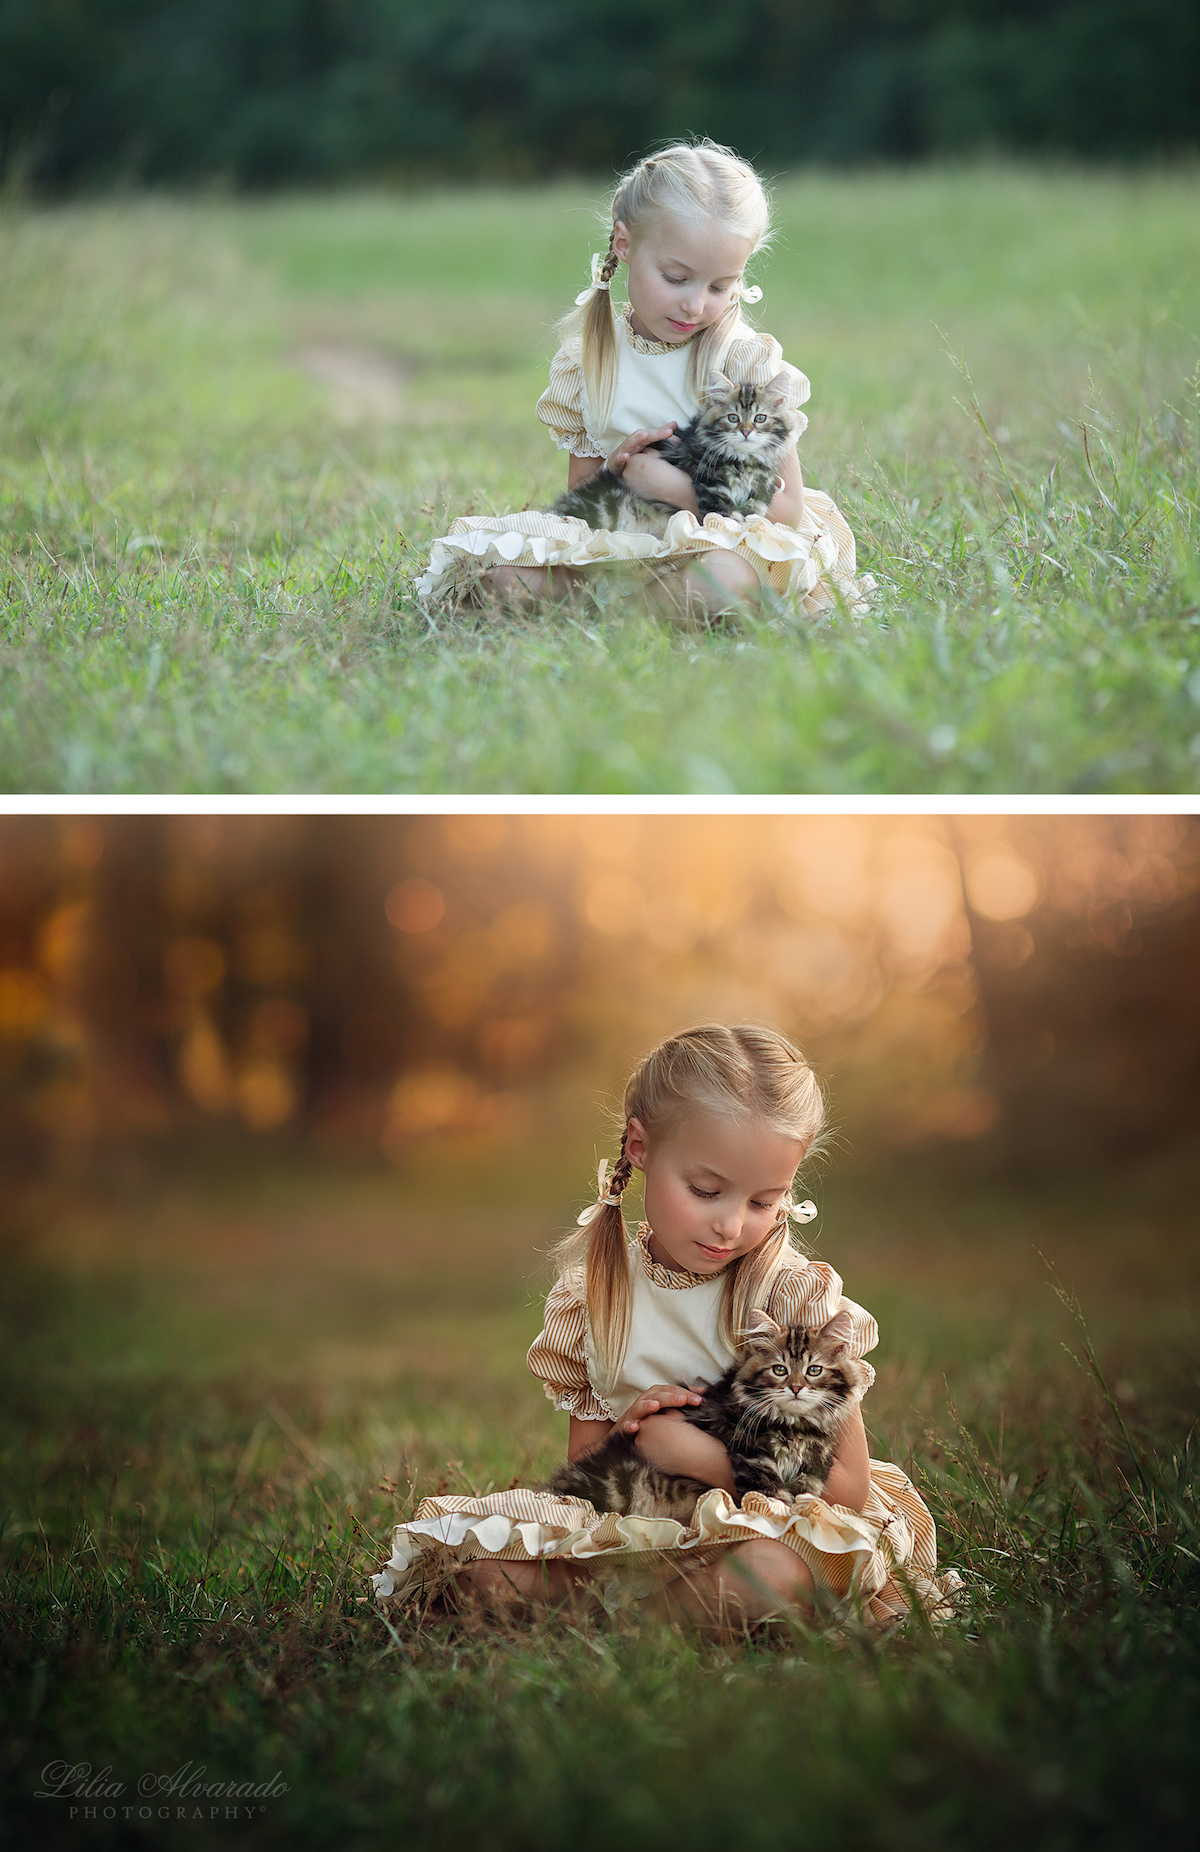 Photo Manipulation Photography by Lilia Alvarado